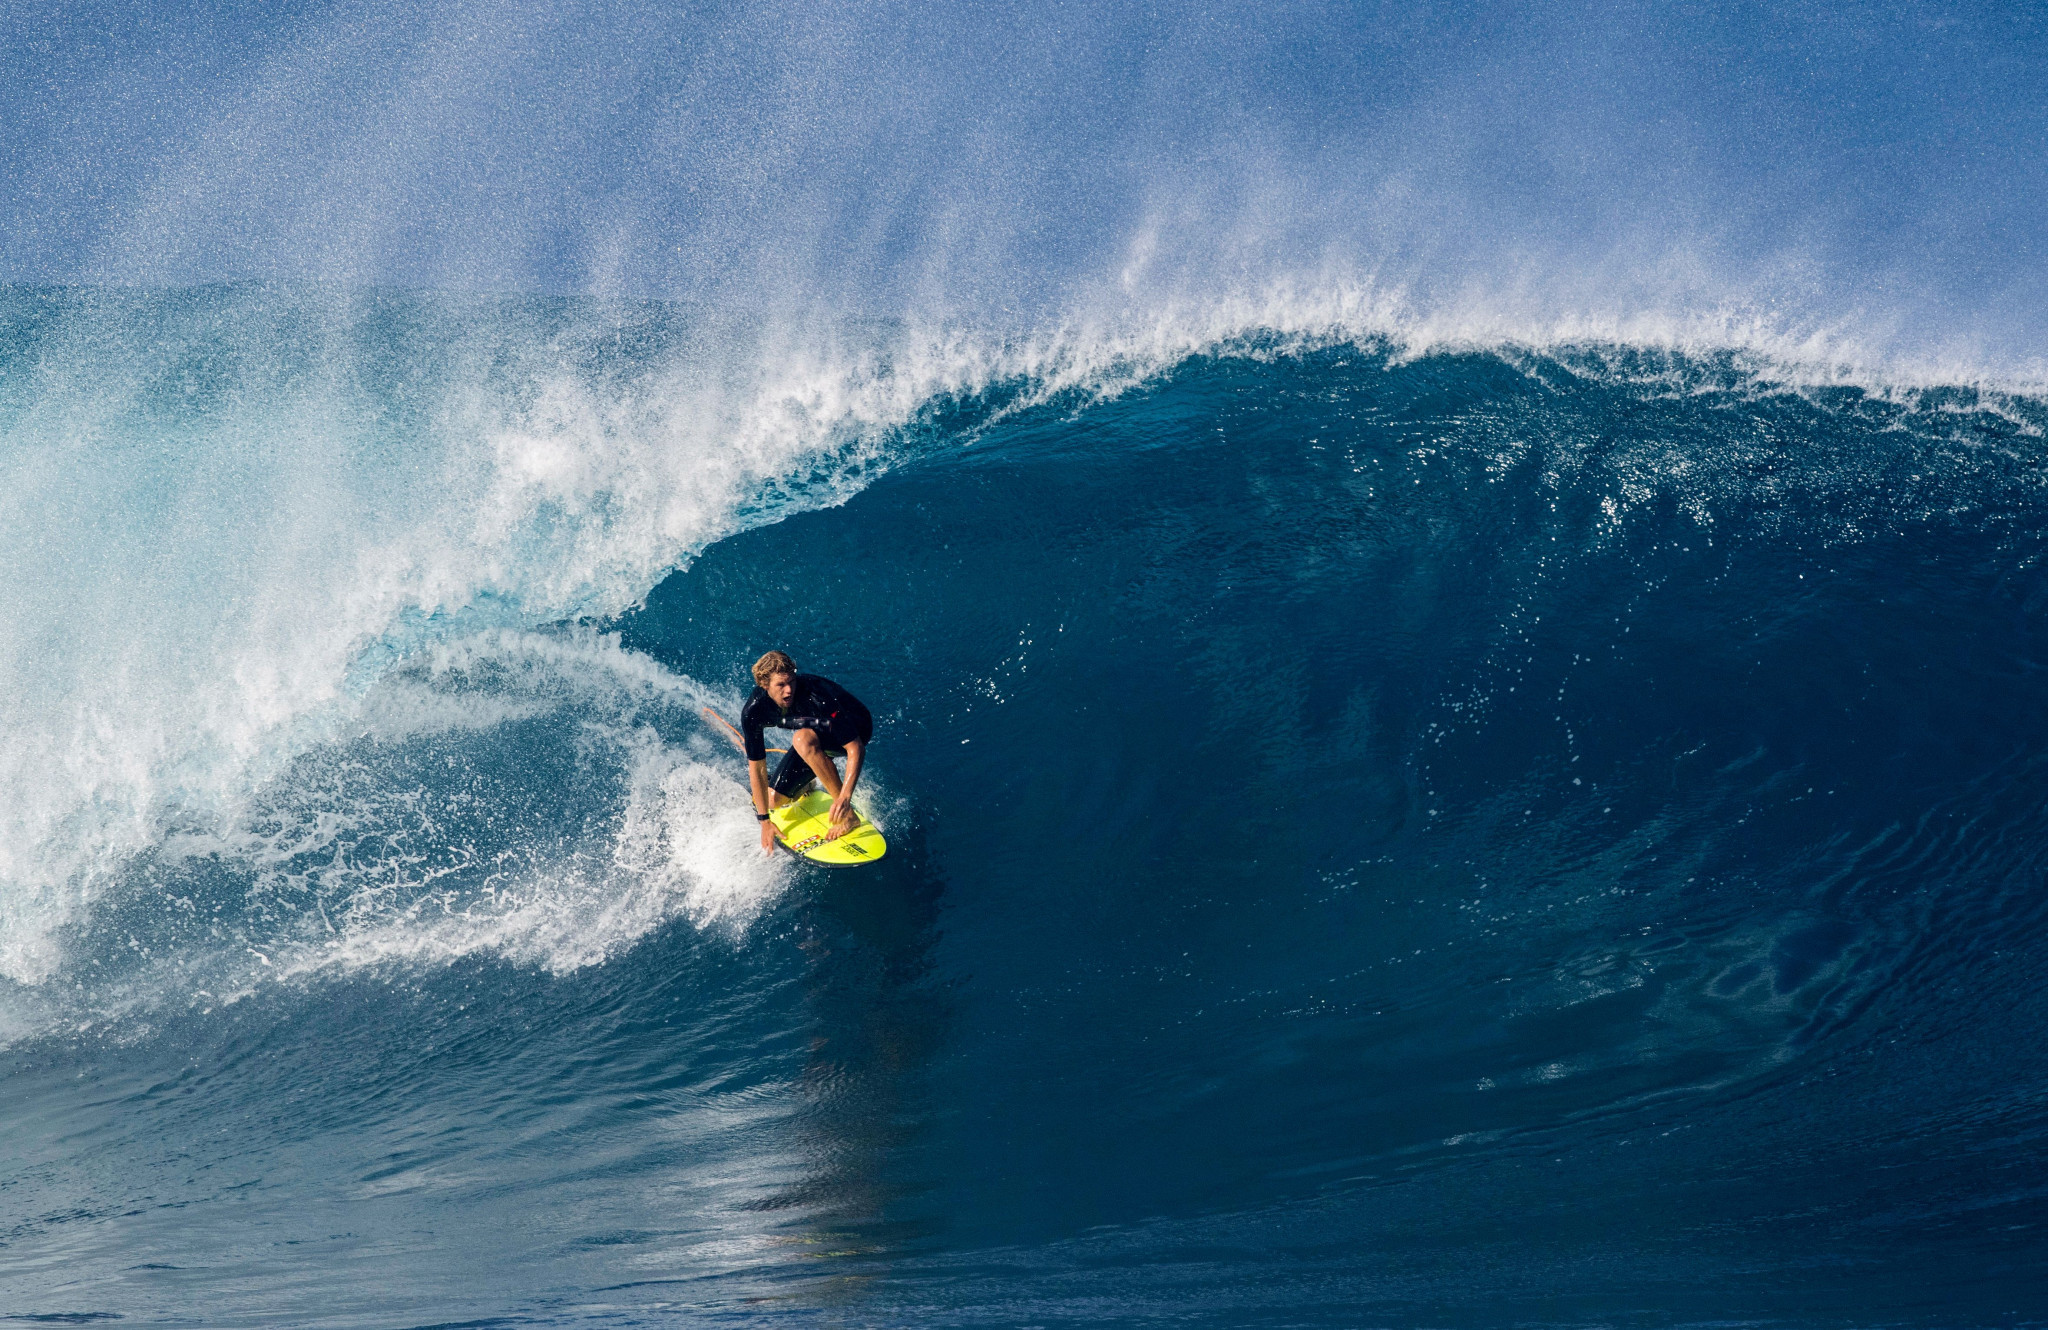 Florence hits perfect 10 on day one of World Surf League leg at Margaret River